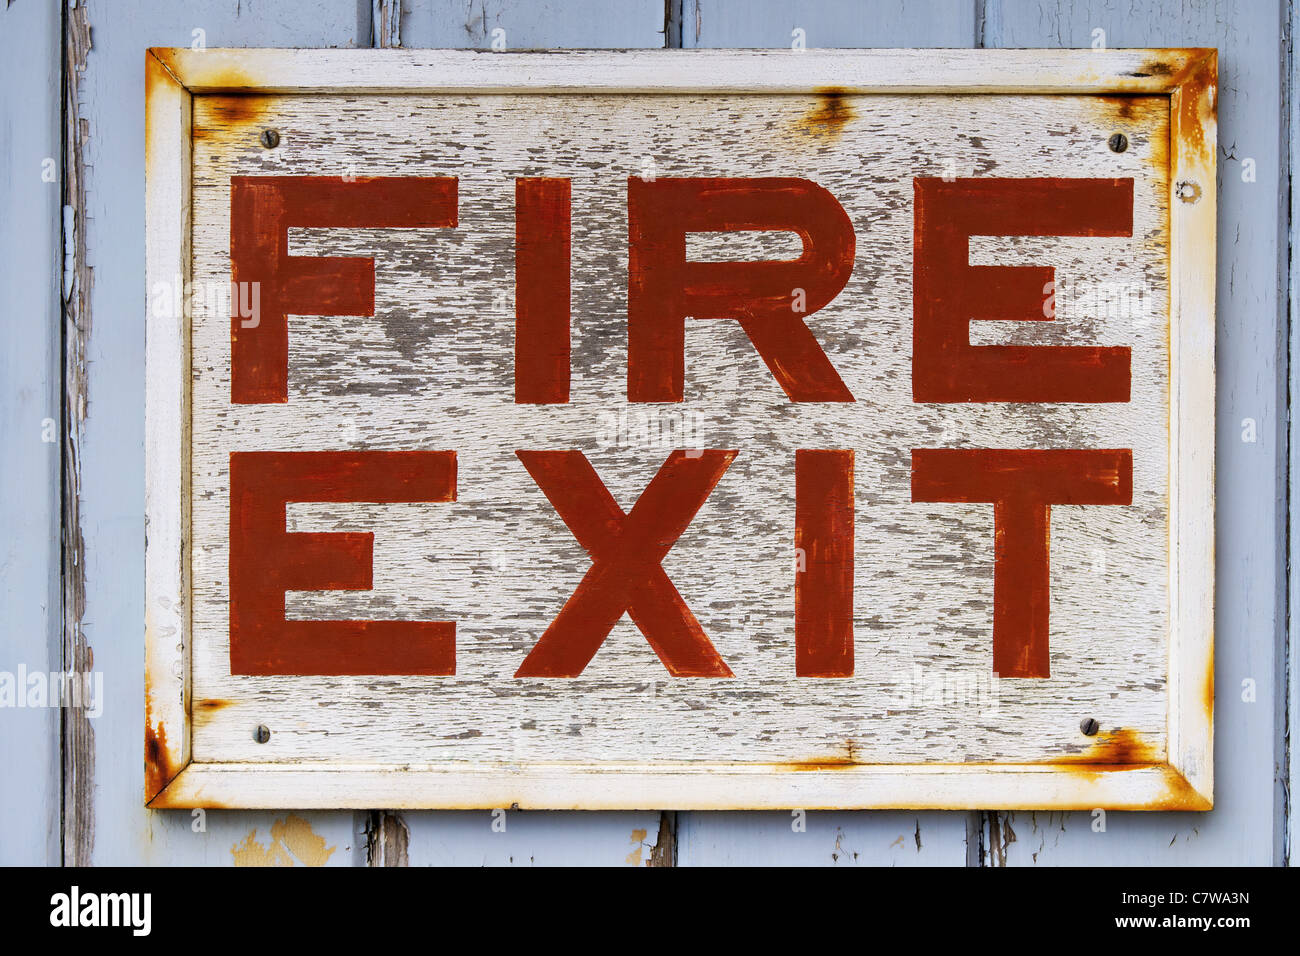 Photo of an old weathered FIRE EXIT sign on a blue door with peeling paint. - Stock Image